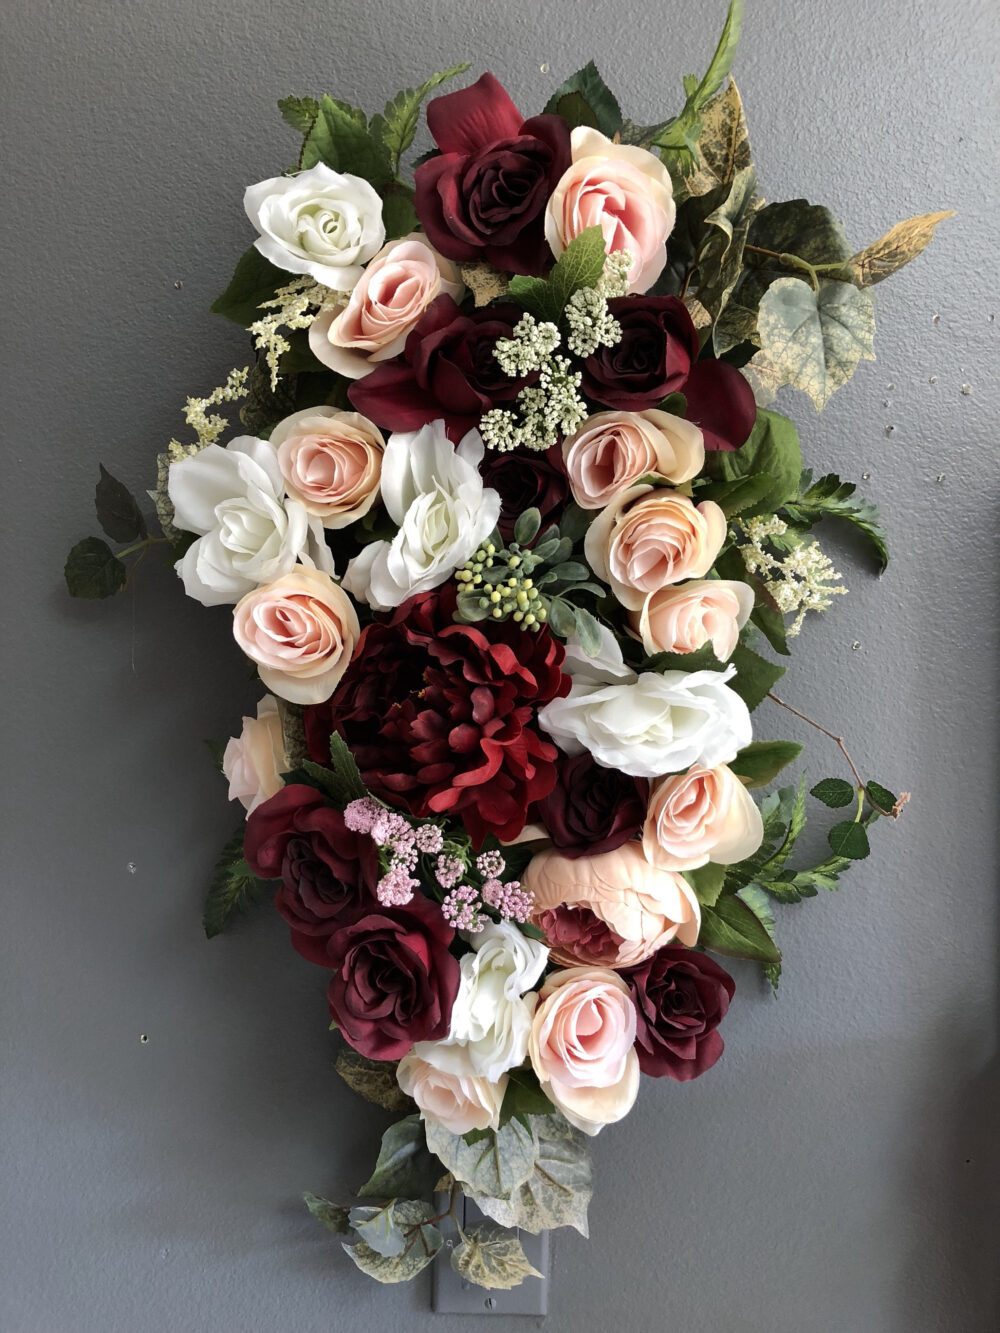 Burgundy-Blush Wedding Pew Flowers, Lantern Flower Accents, Small Swags, Boho Aisle Swag, Accents For Lanterns, Flowers